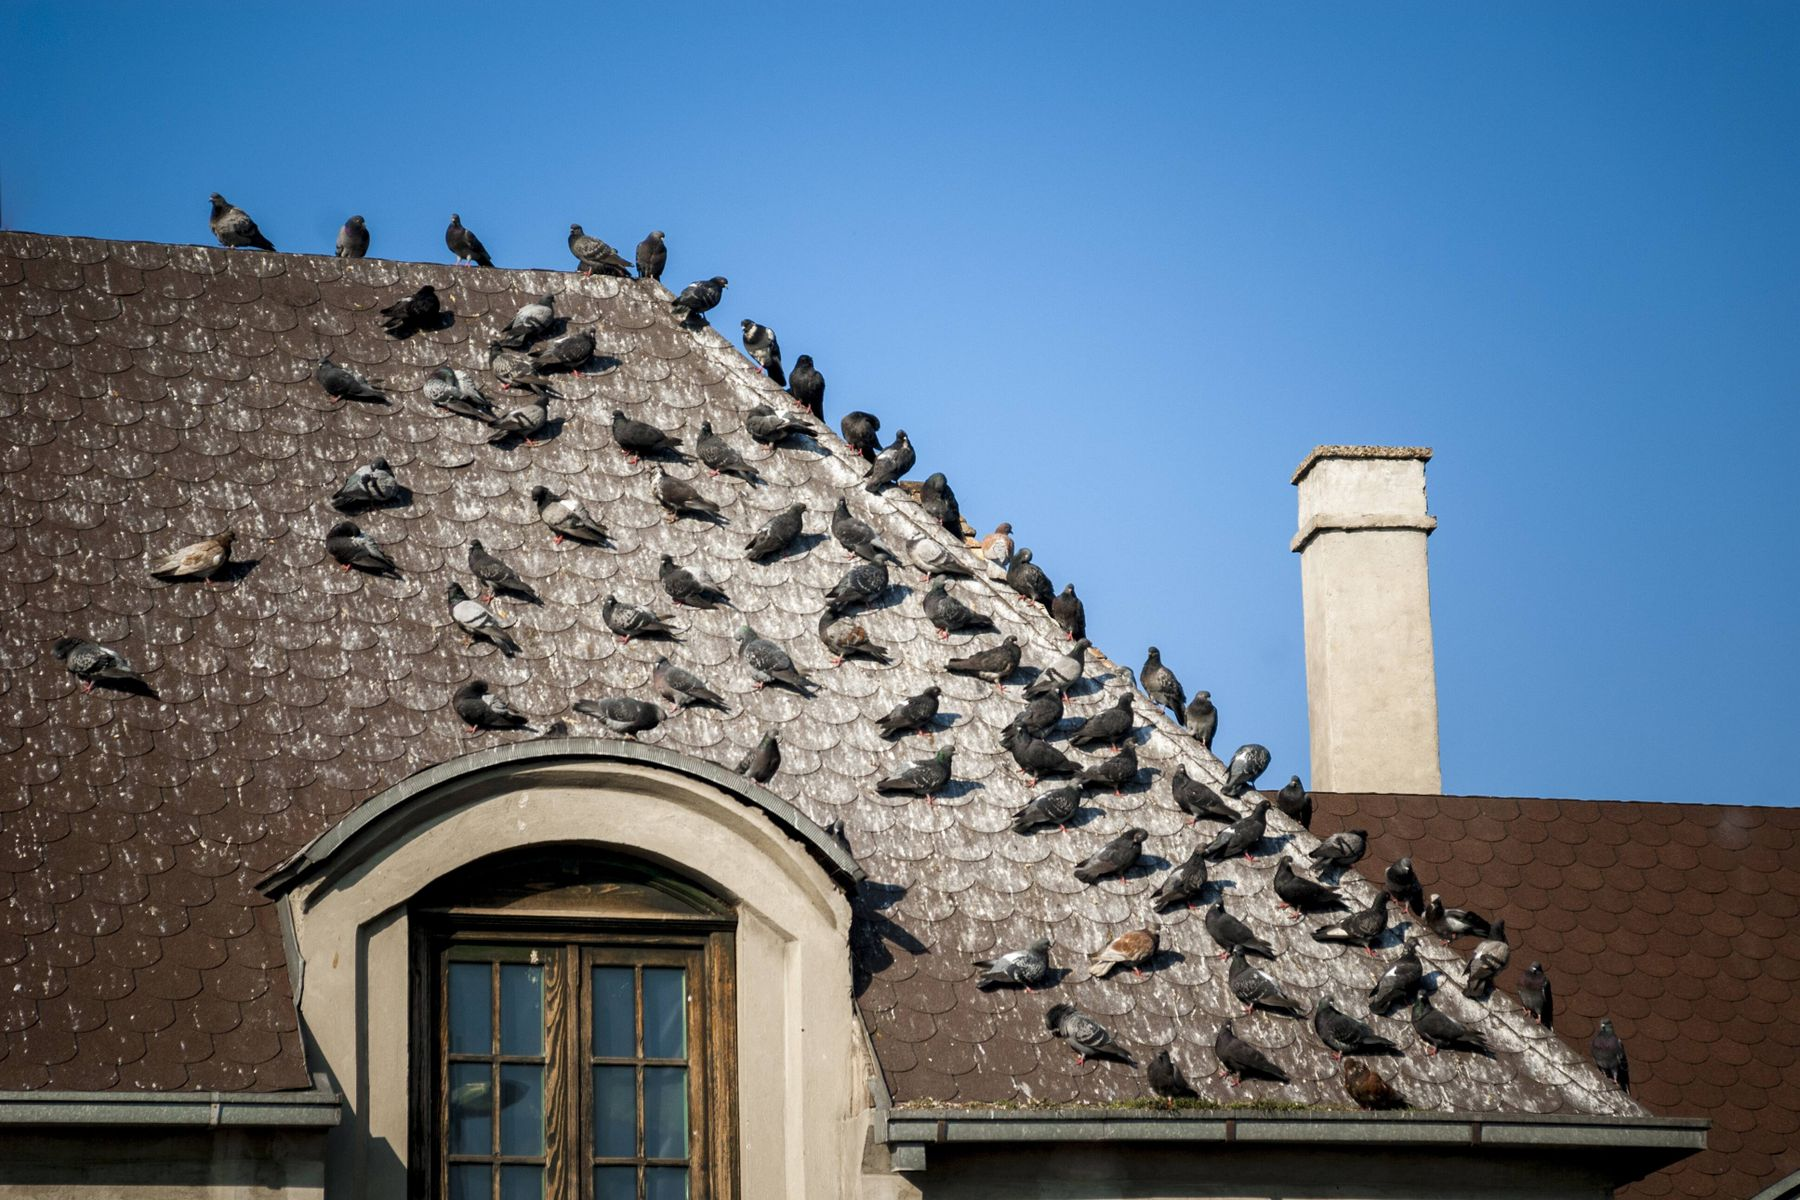 Bird proofing your roof: how to keep pigeons away